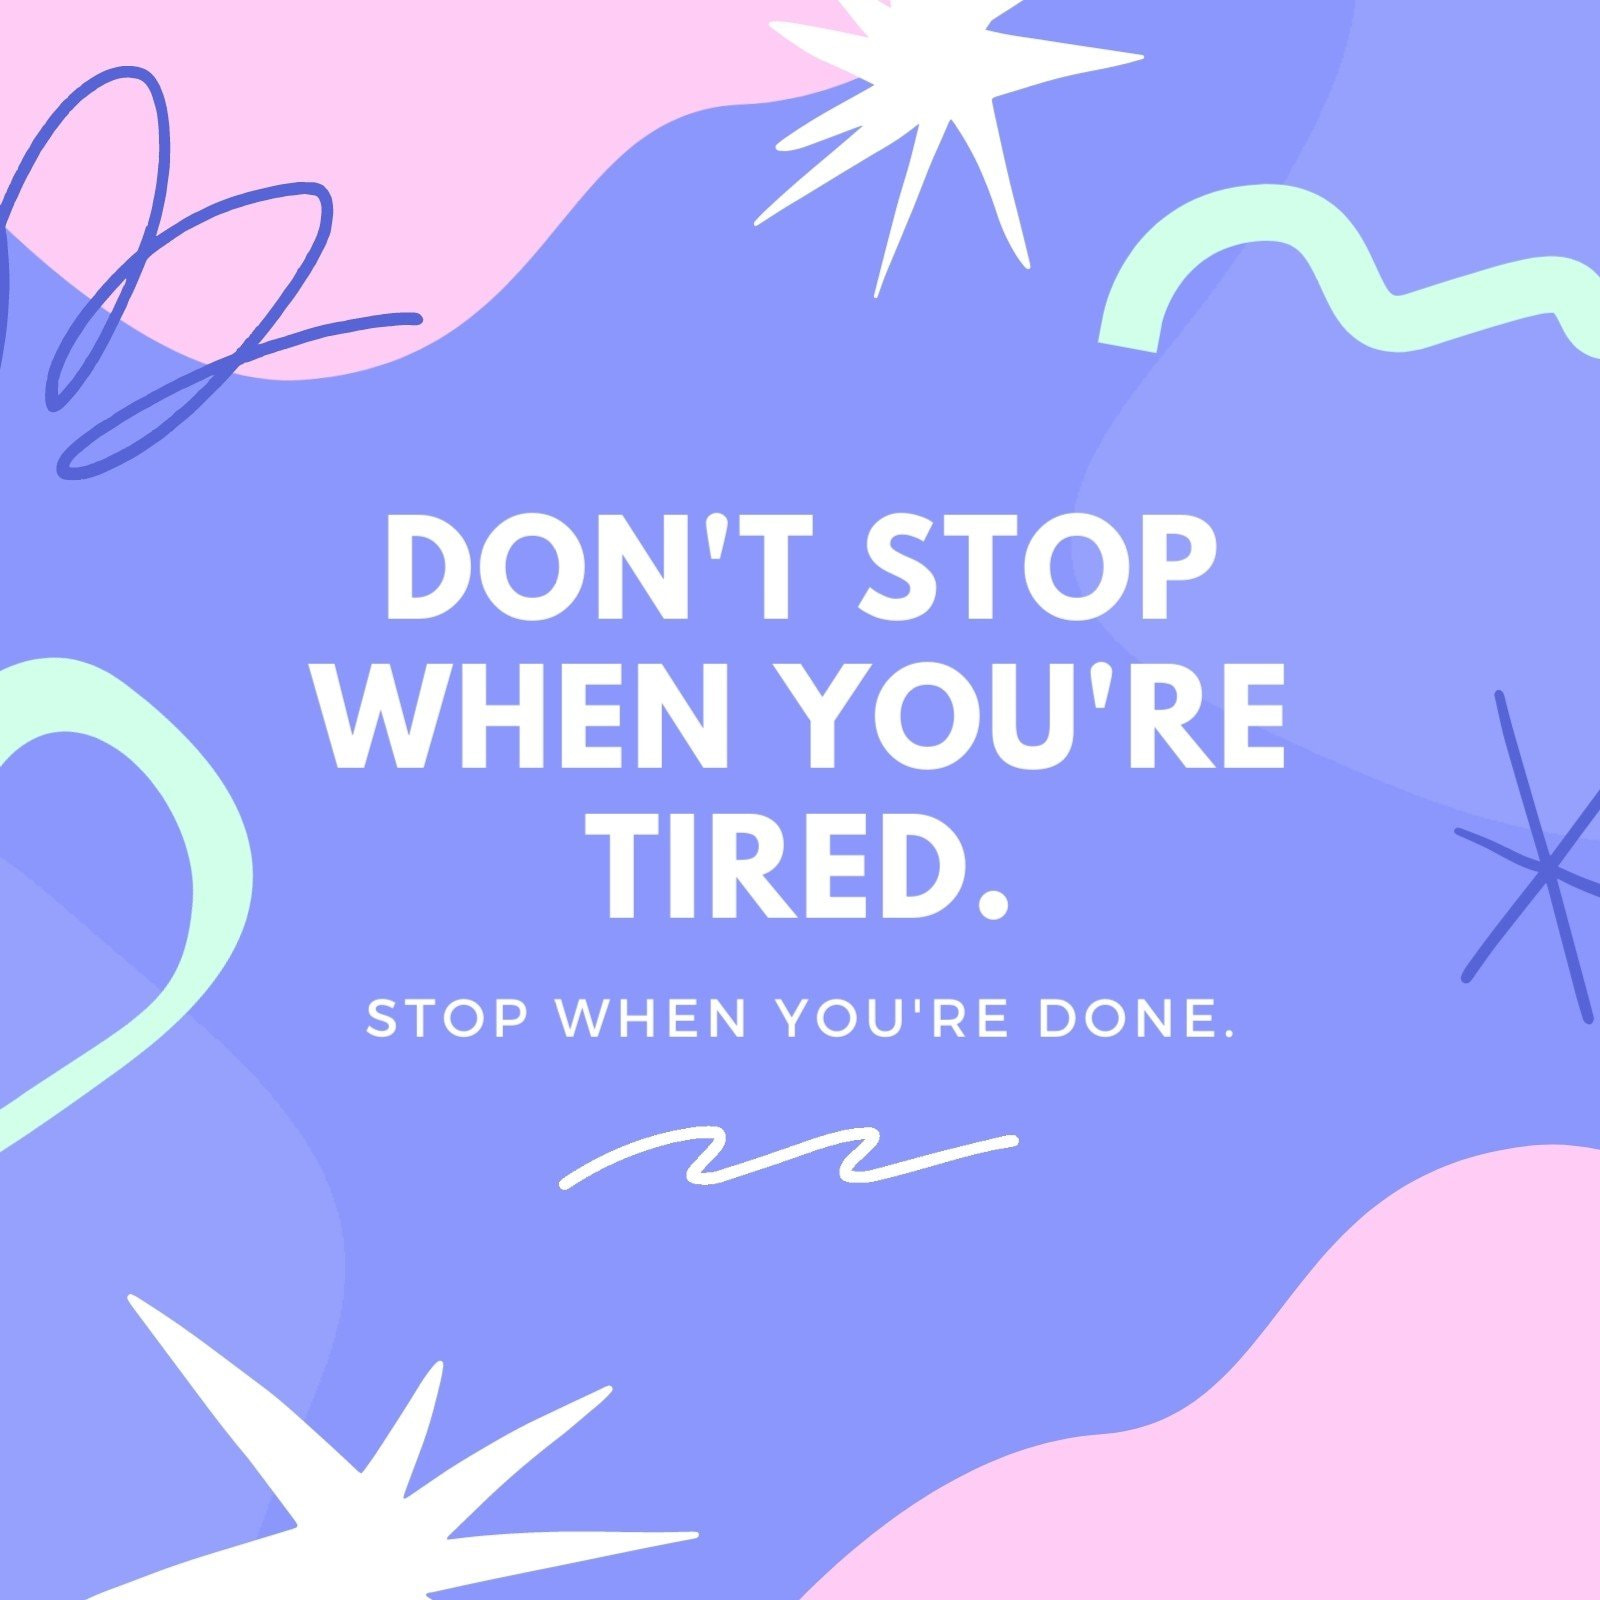 Purple and Pink Illustrative and Colorful Quotes Social Media Post